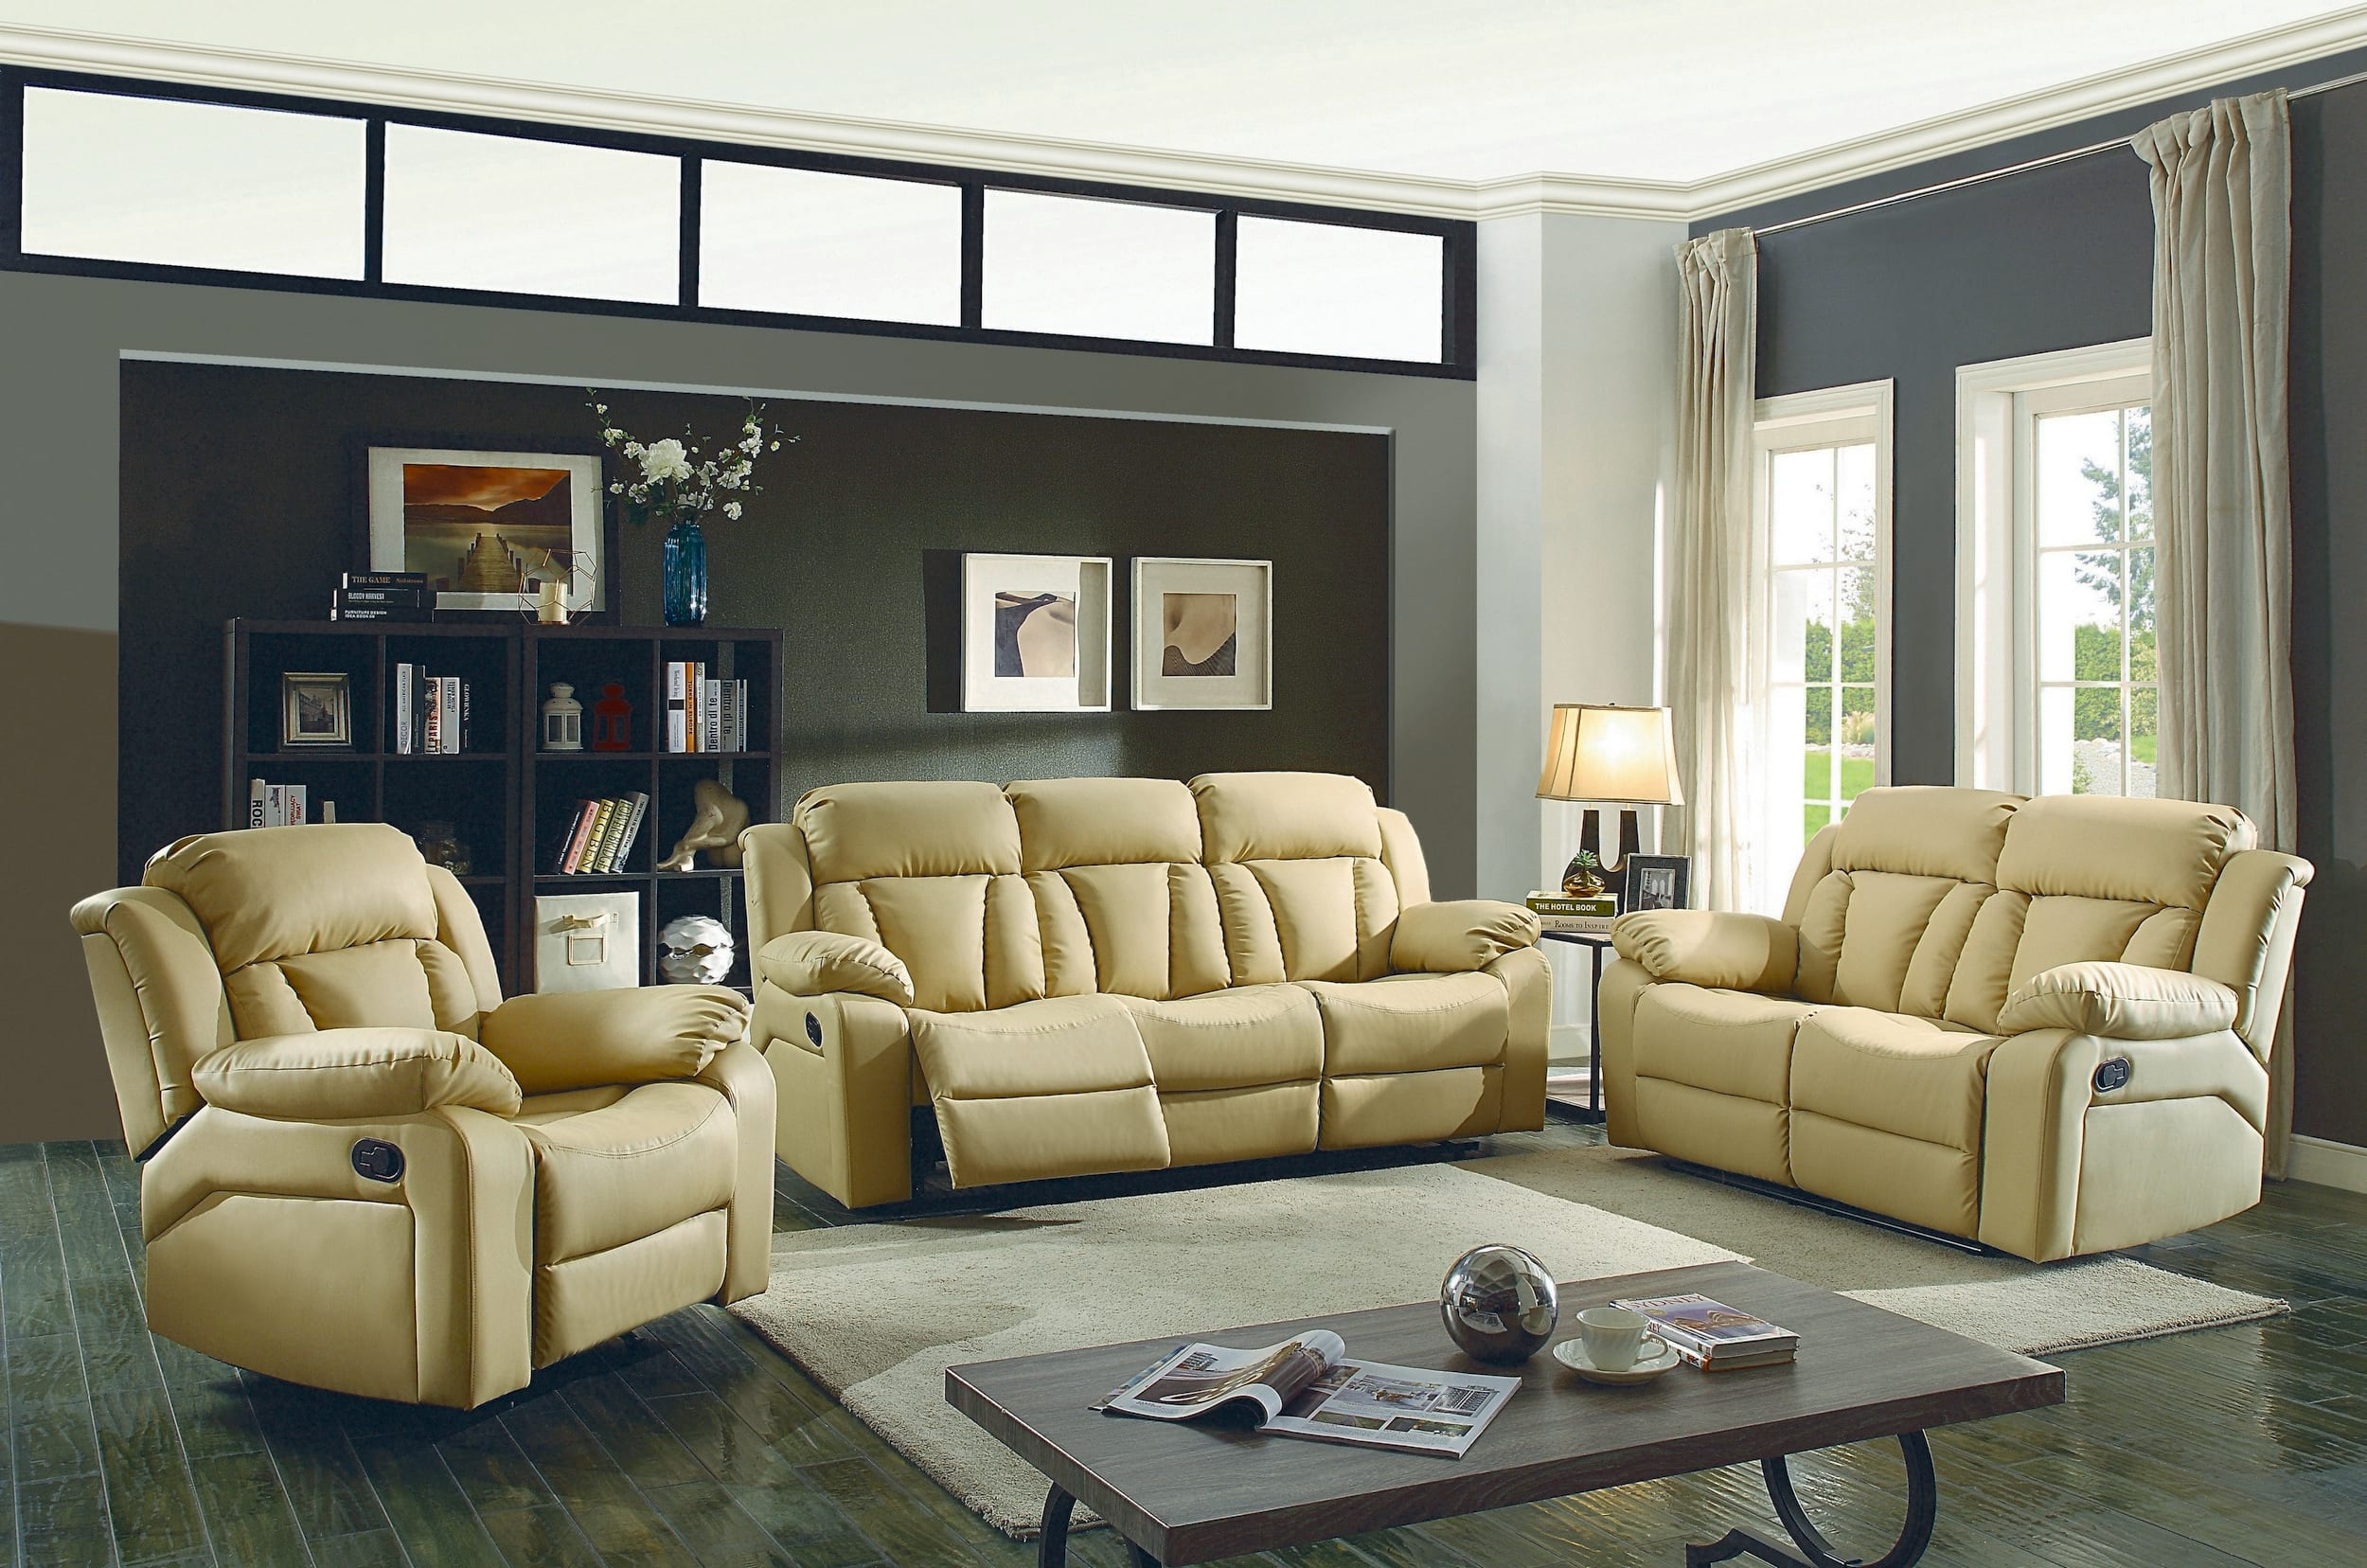 Glory Springfield Beige Faux Leather Reclining 3 Piece Living Room with regard to 13 Awesome Ways How to Improve 3 Piece Leather Reclining Living Room Set